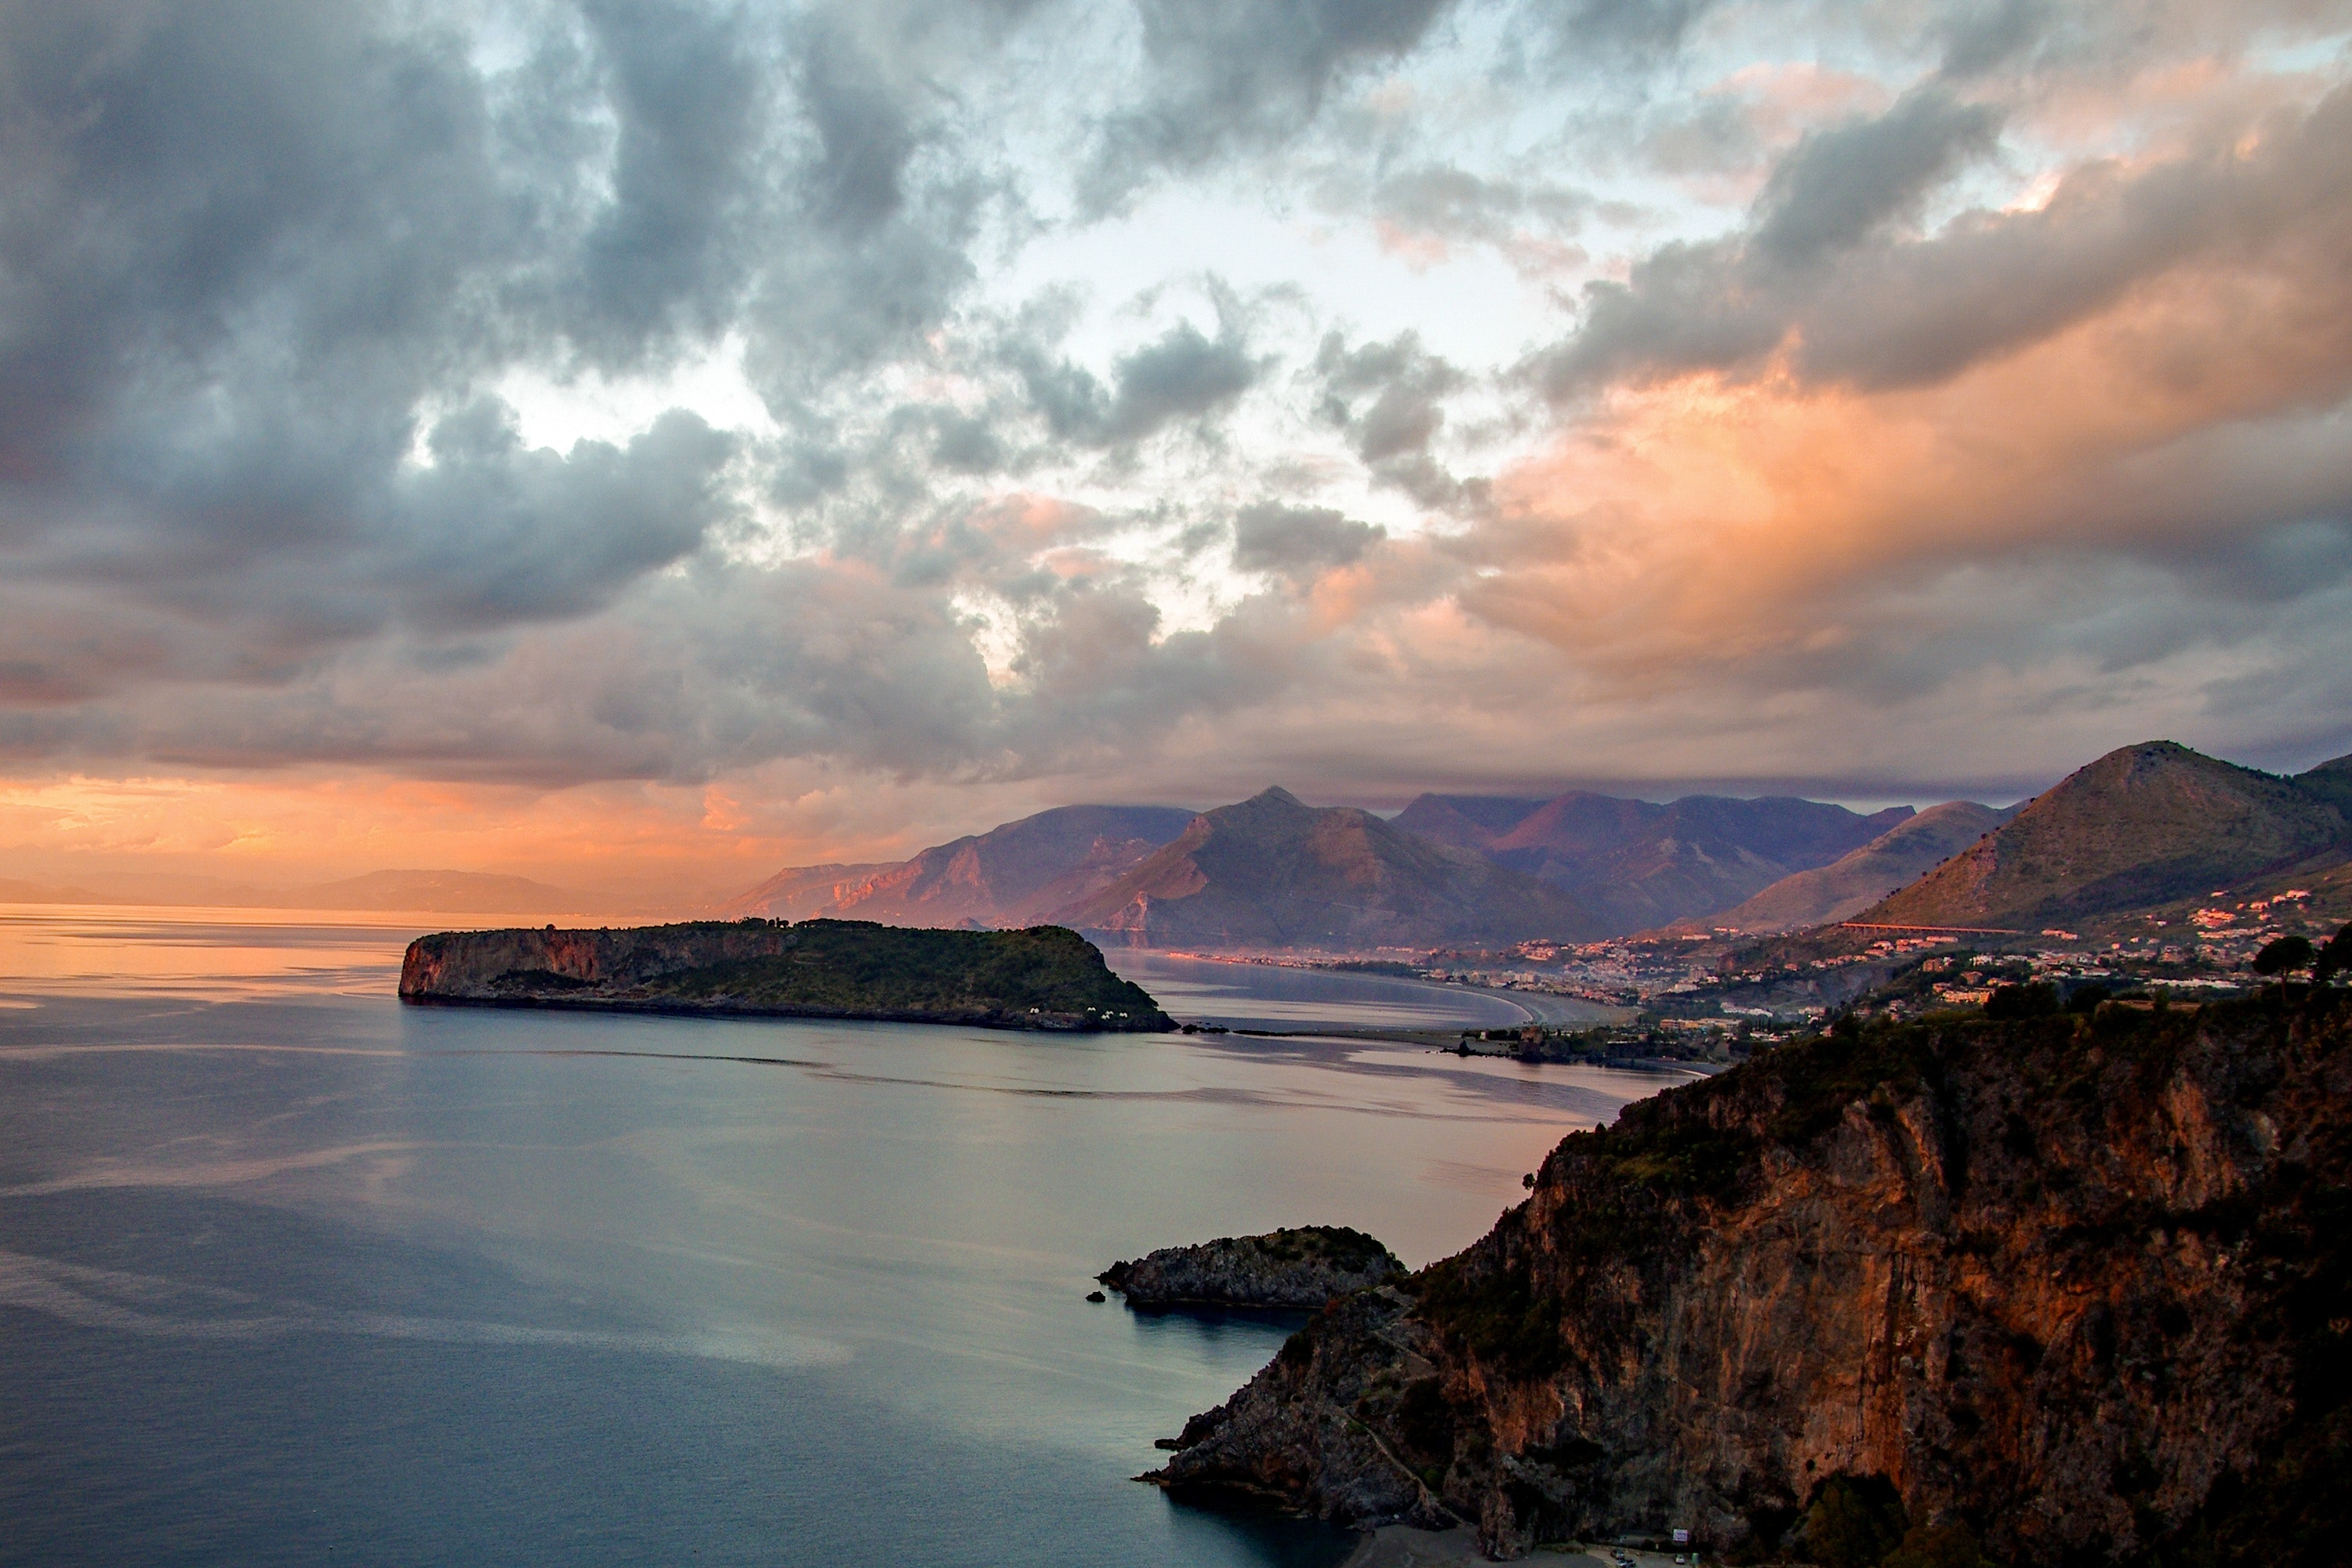 Scenic View of Dramatic Sky over Sea, Bay, Rocks, Travel, Sunset, HQ Photo